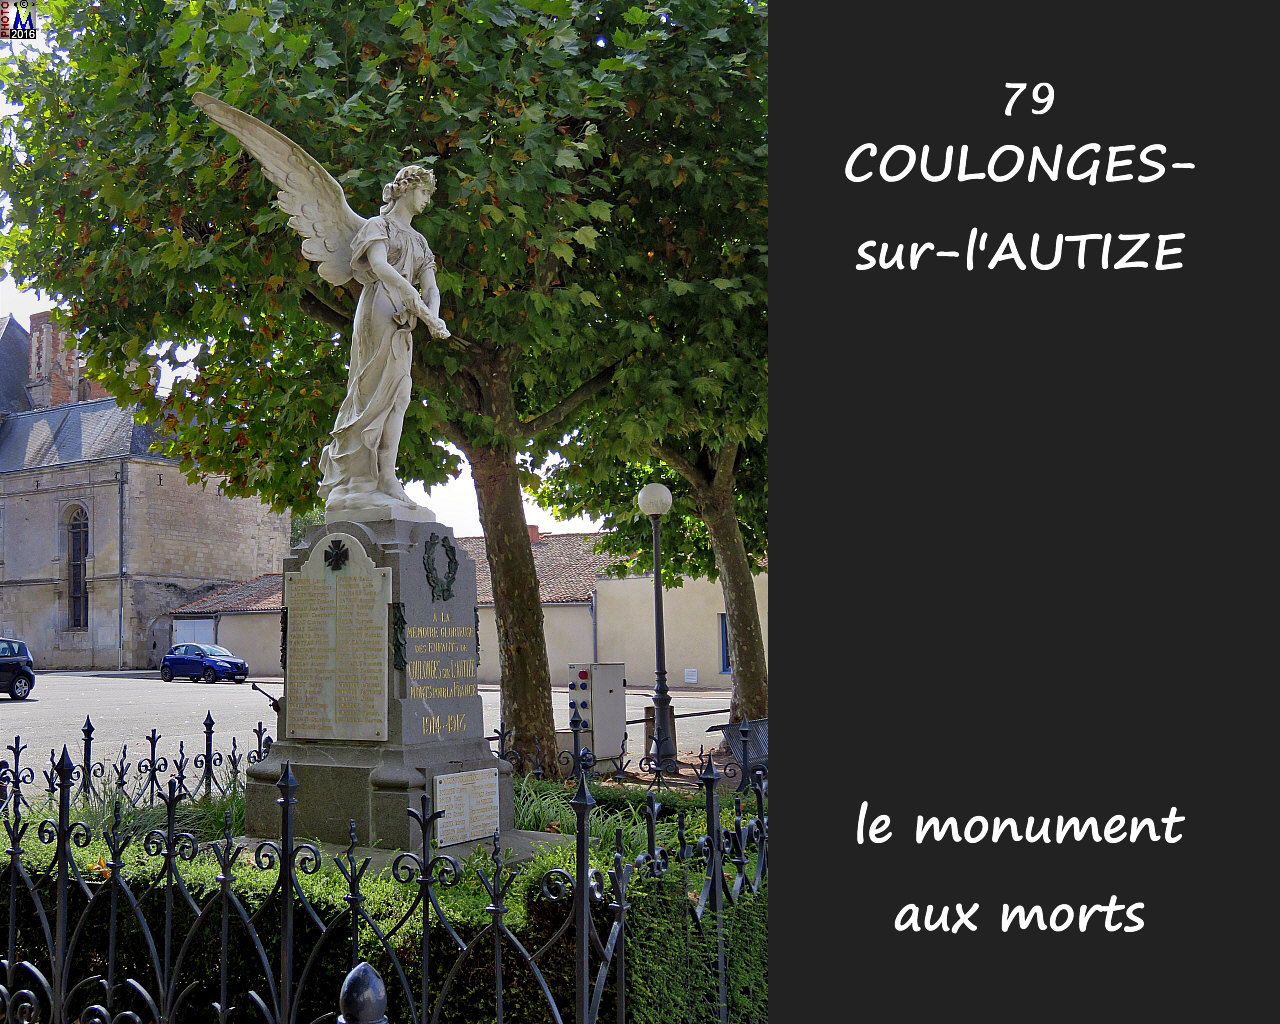 79COULONGES-AUTIZE_morts_1000.jpg